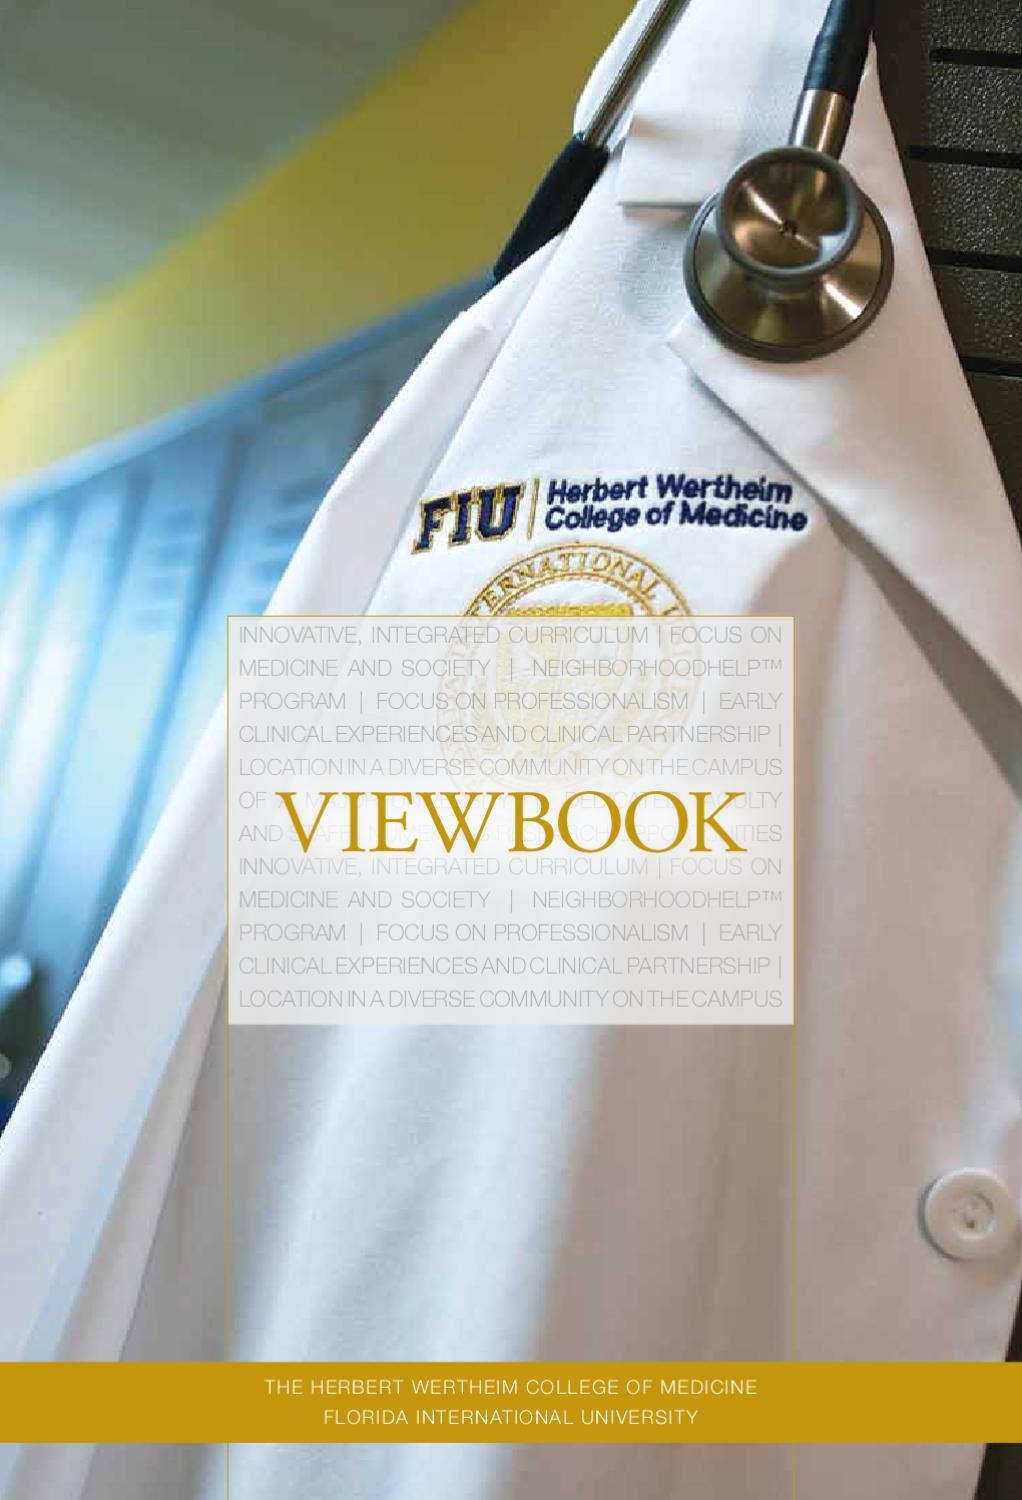 Herbert Wertheim College of Medicine Viewbook by FIU - issuu